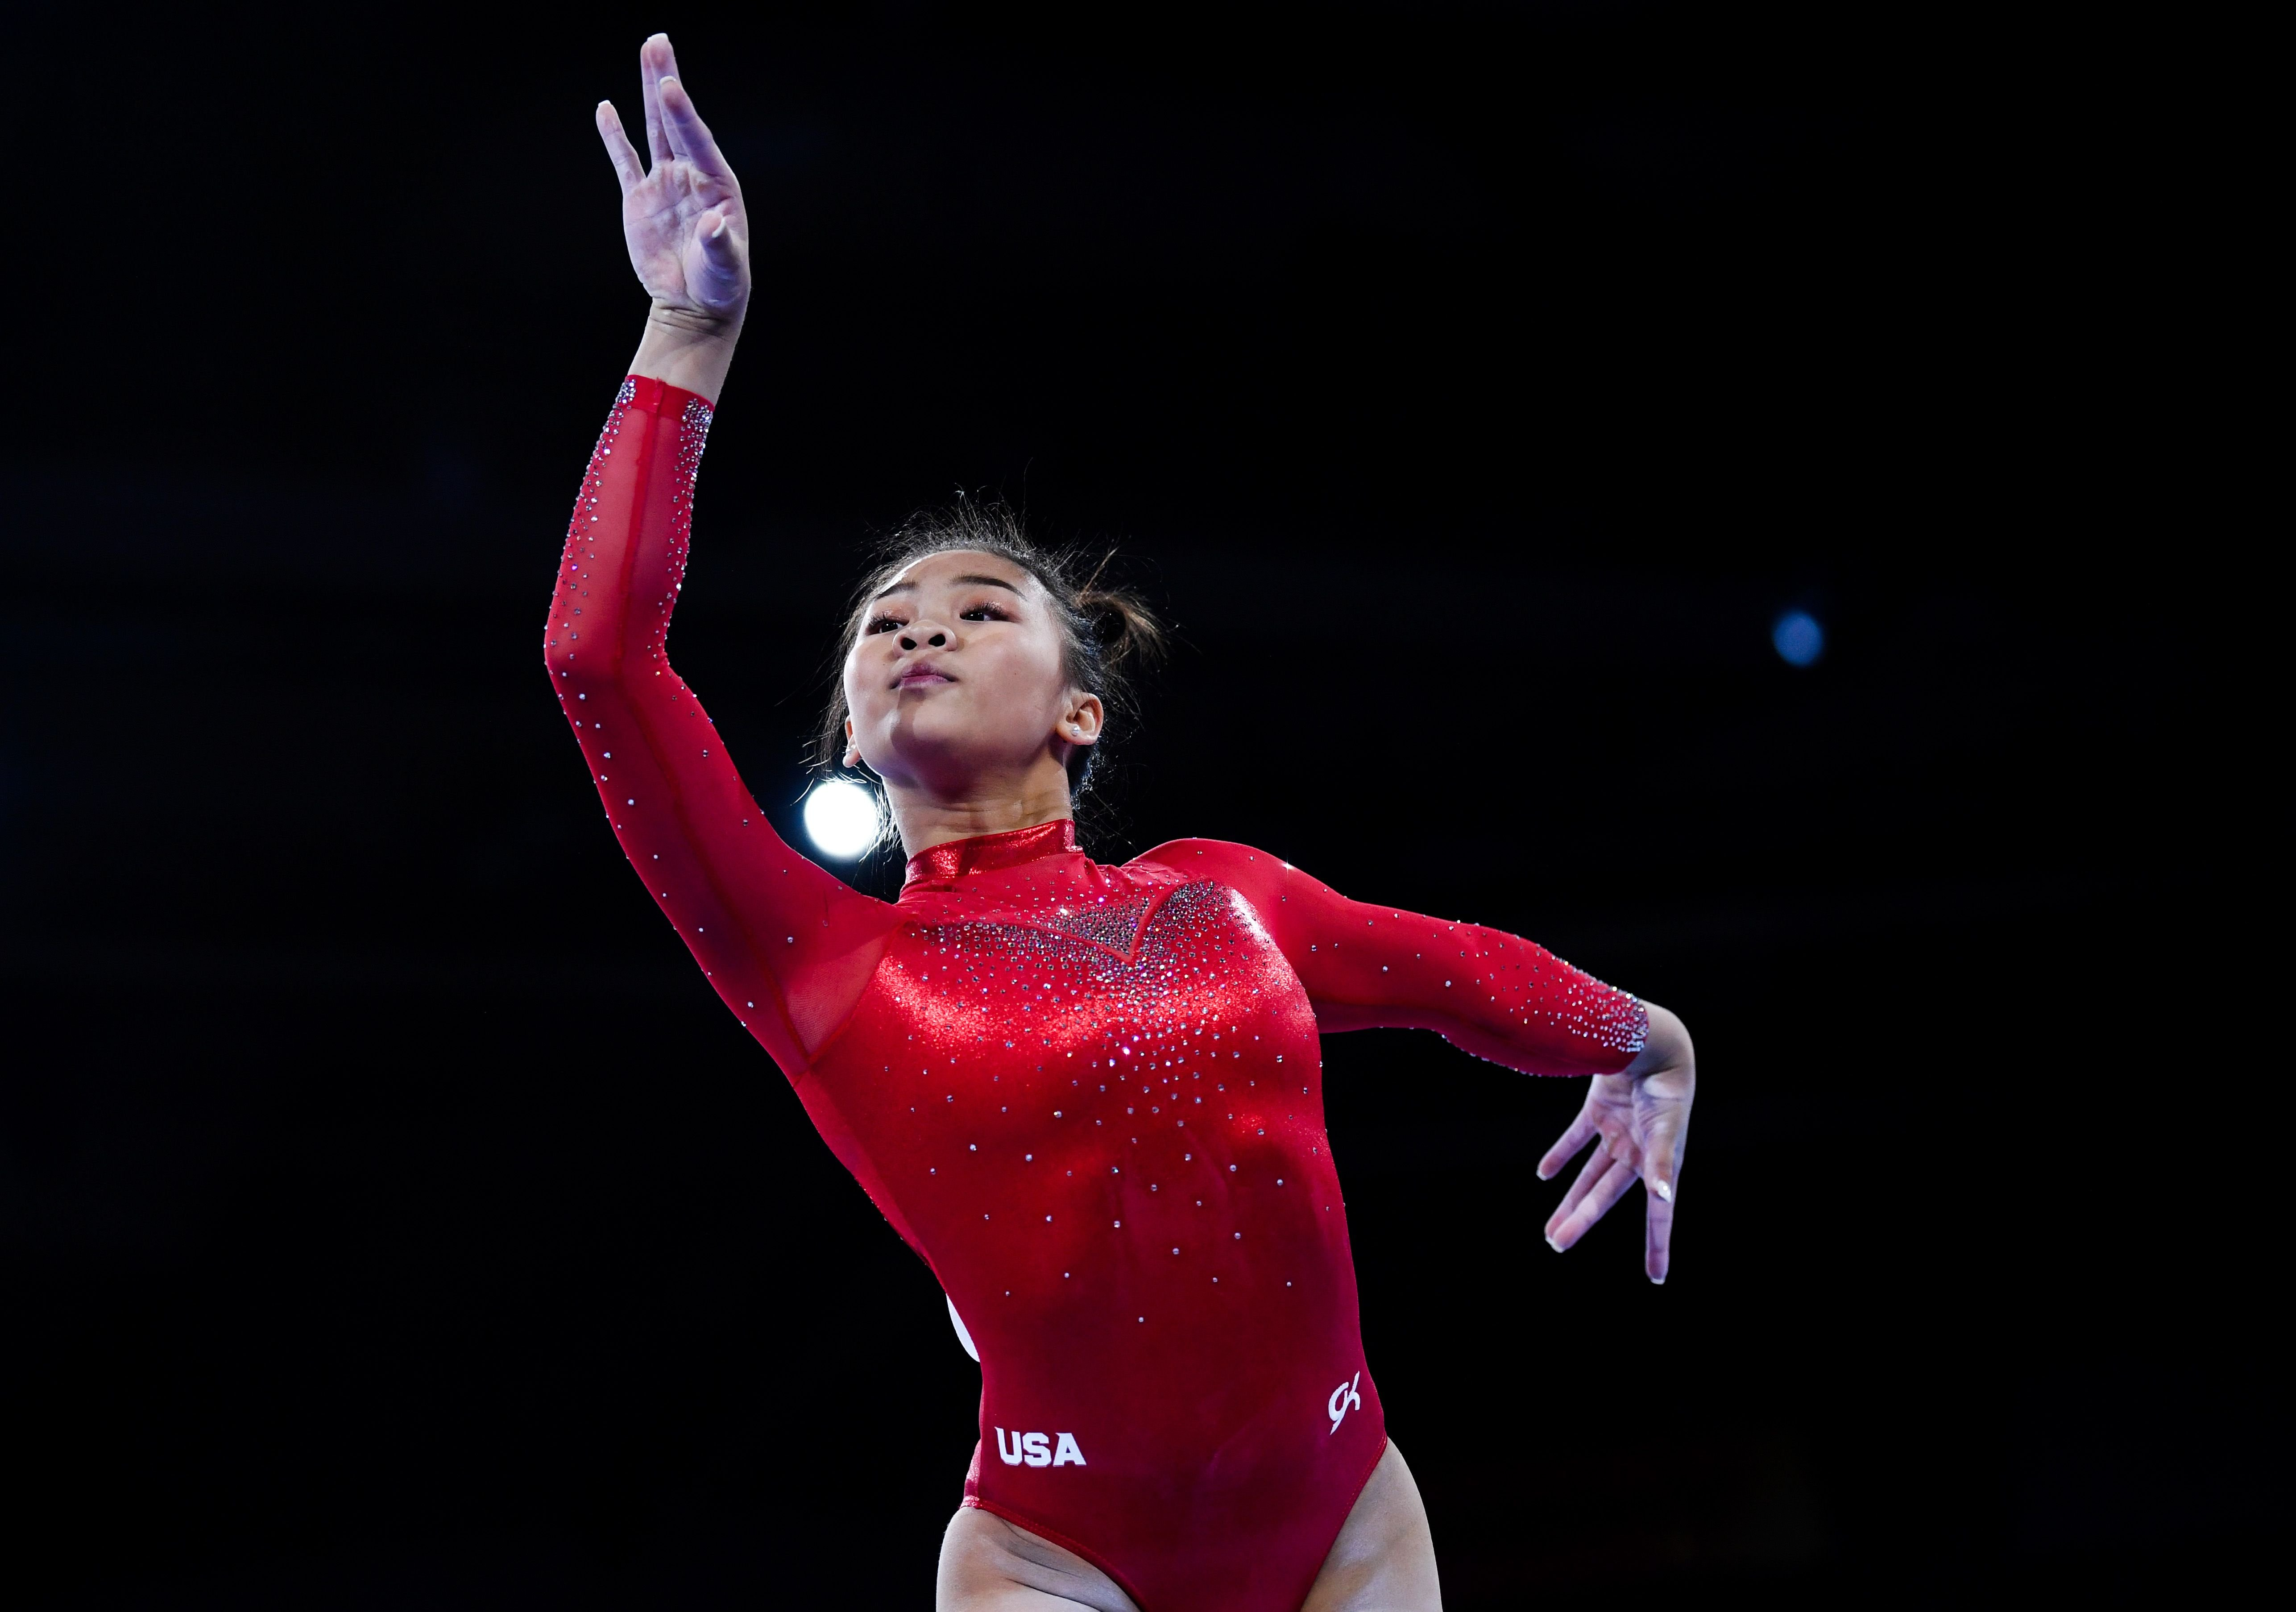 Sunisa Lee performs during the Women's All-Around Final of FIG Artistic Gymnastics World Championships on October 10, 2019, in Stuttgart, Germany   Photo:Laurence Griffiths/Getty Images